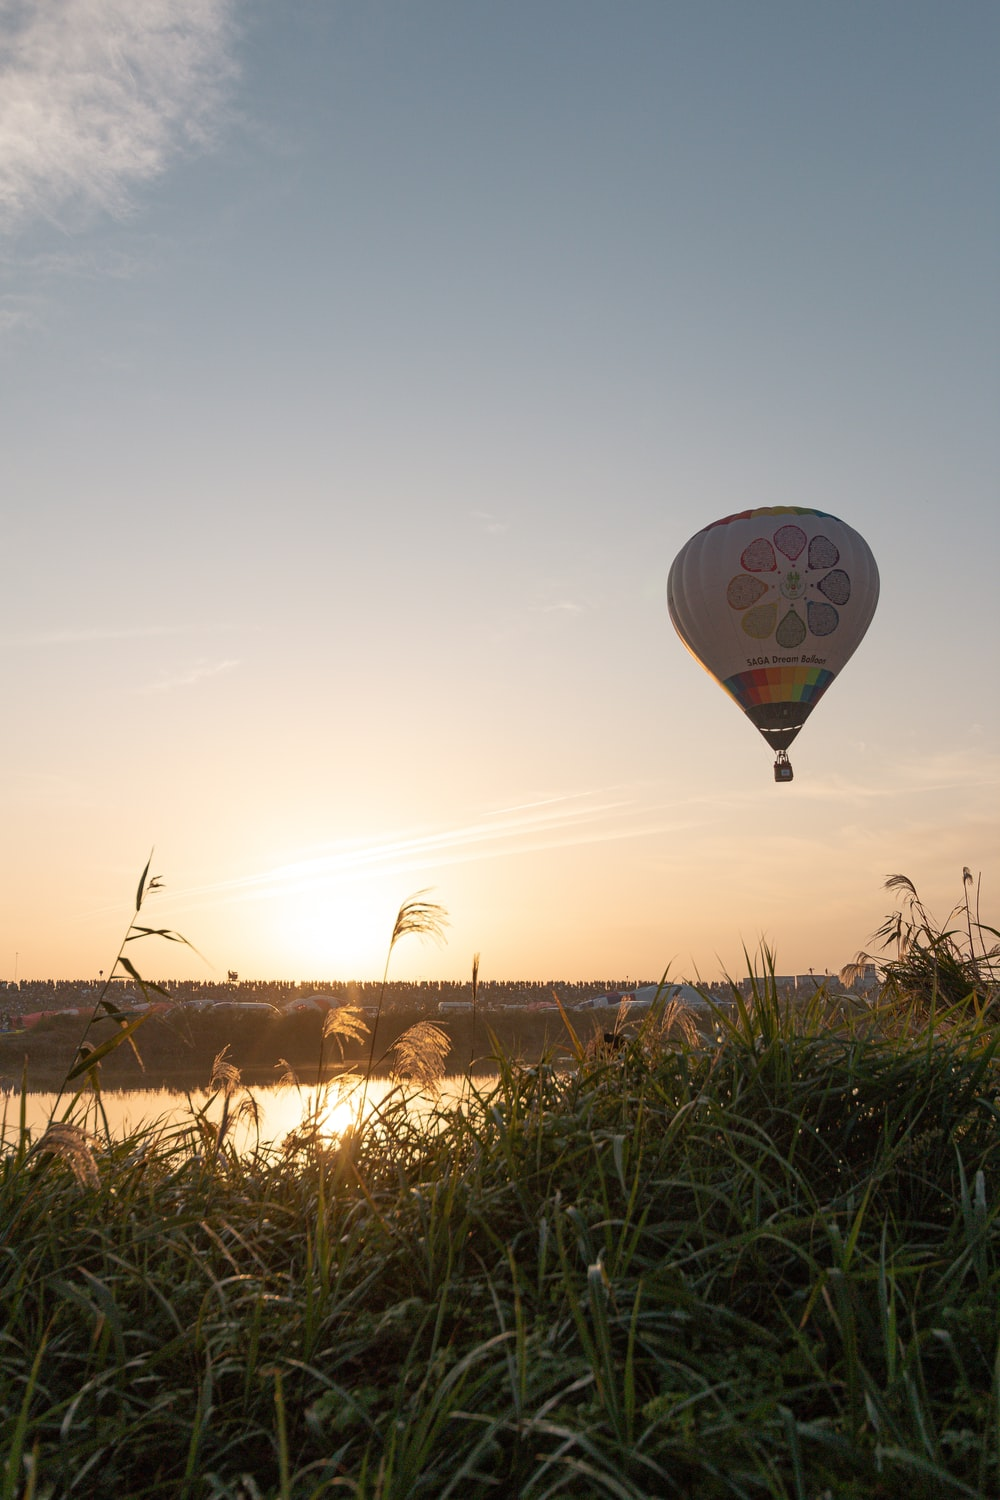 hot air balloon flying over the field during daytime